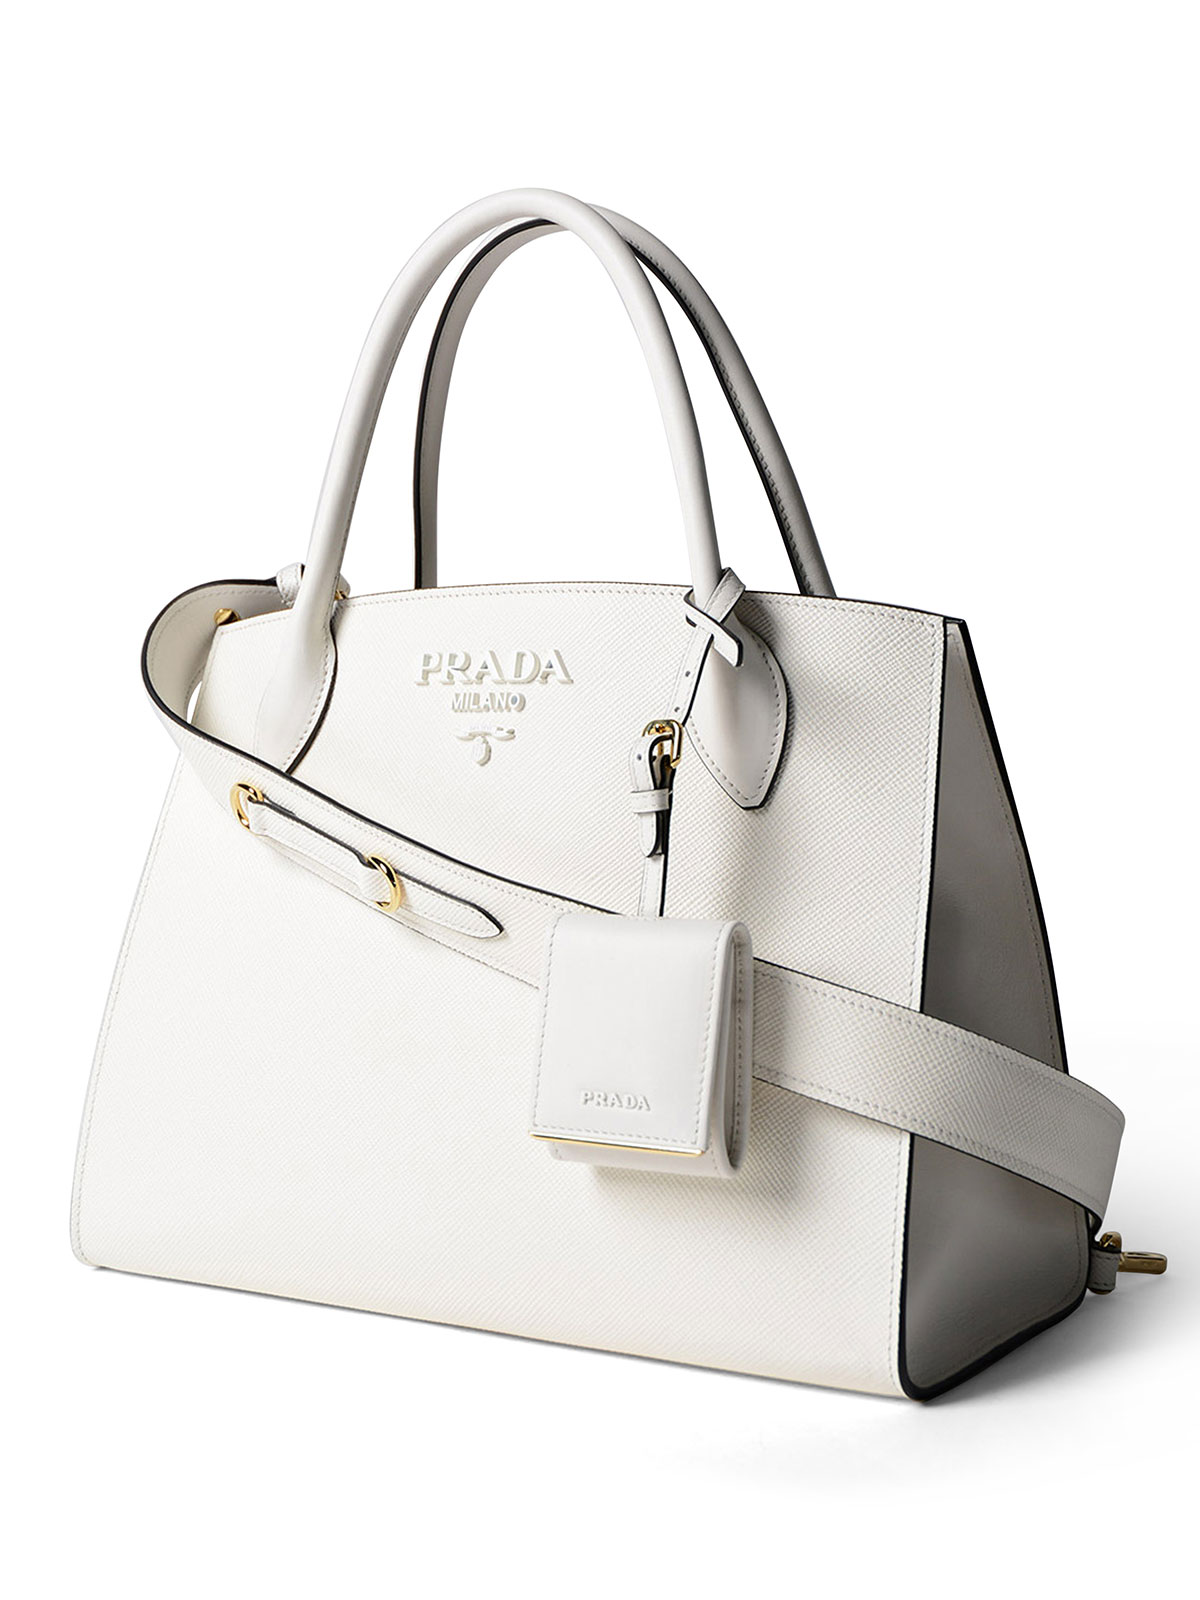 Monochrome white leather tote by Prada - totes bags | iKRIX